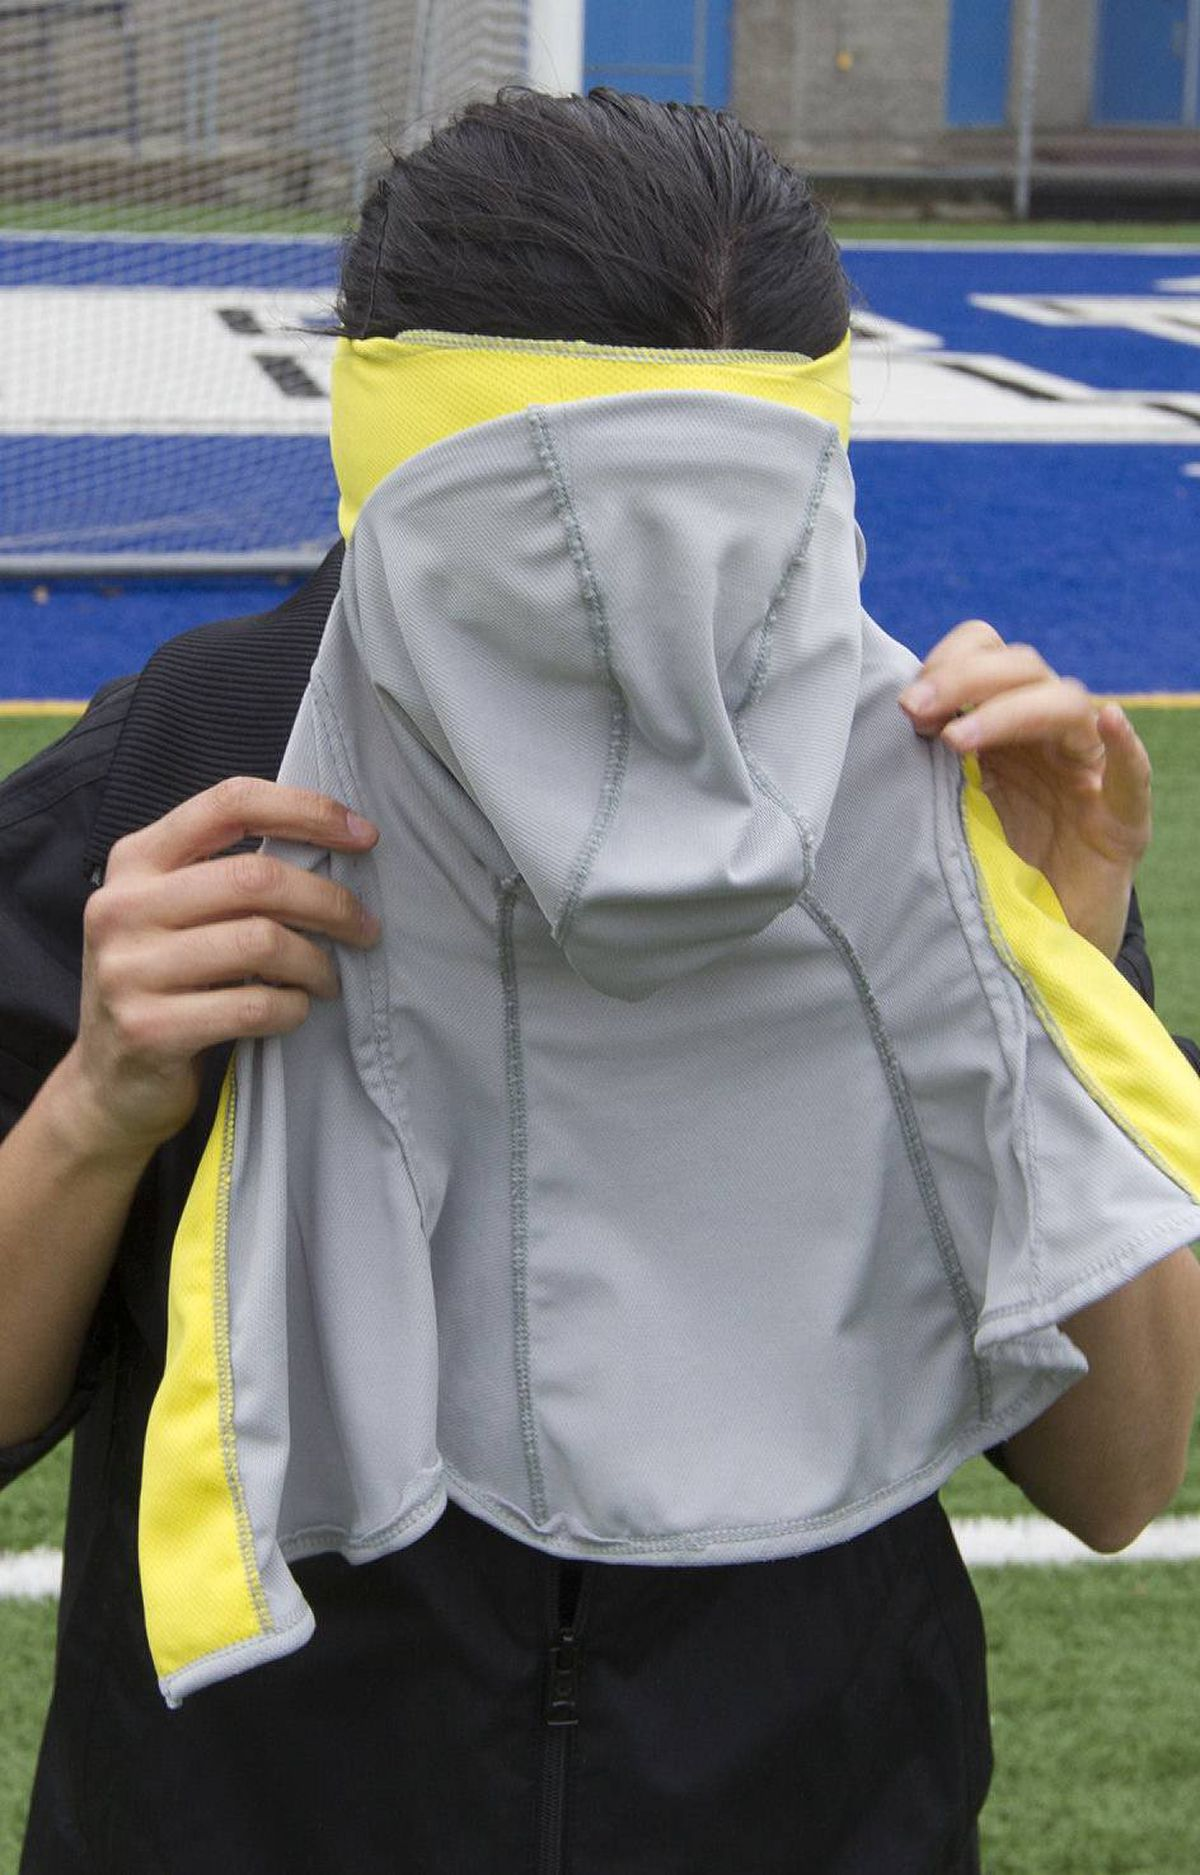 Elham Seyed Javad shows how to wear her design for a sports hijab in Montreal, May 1, 2012. Her design is in competition to become the headscarf chosen by FIFA, which is lifting its ban on the head coverings in soccer.